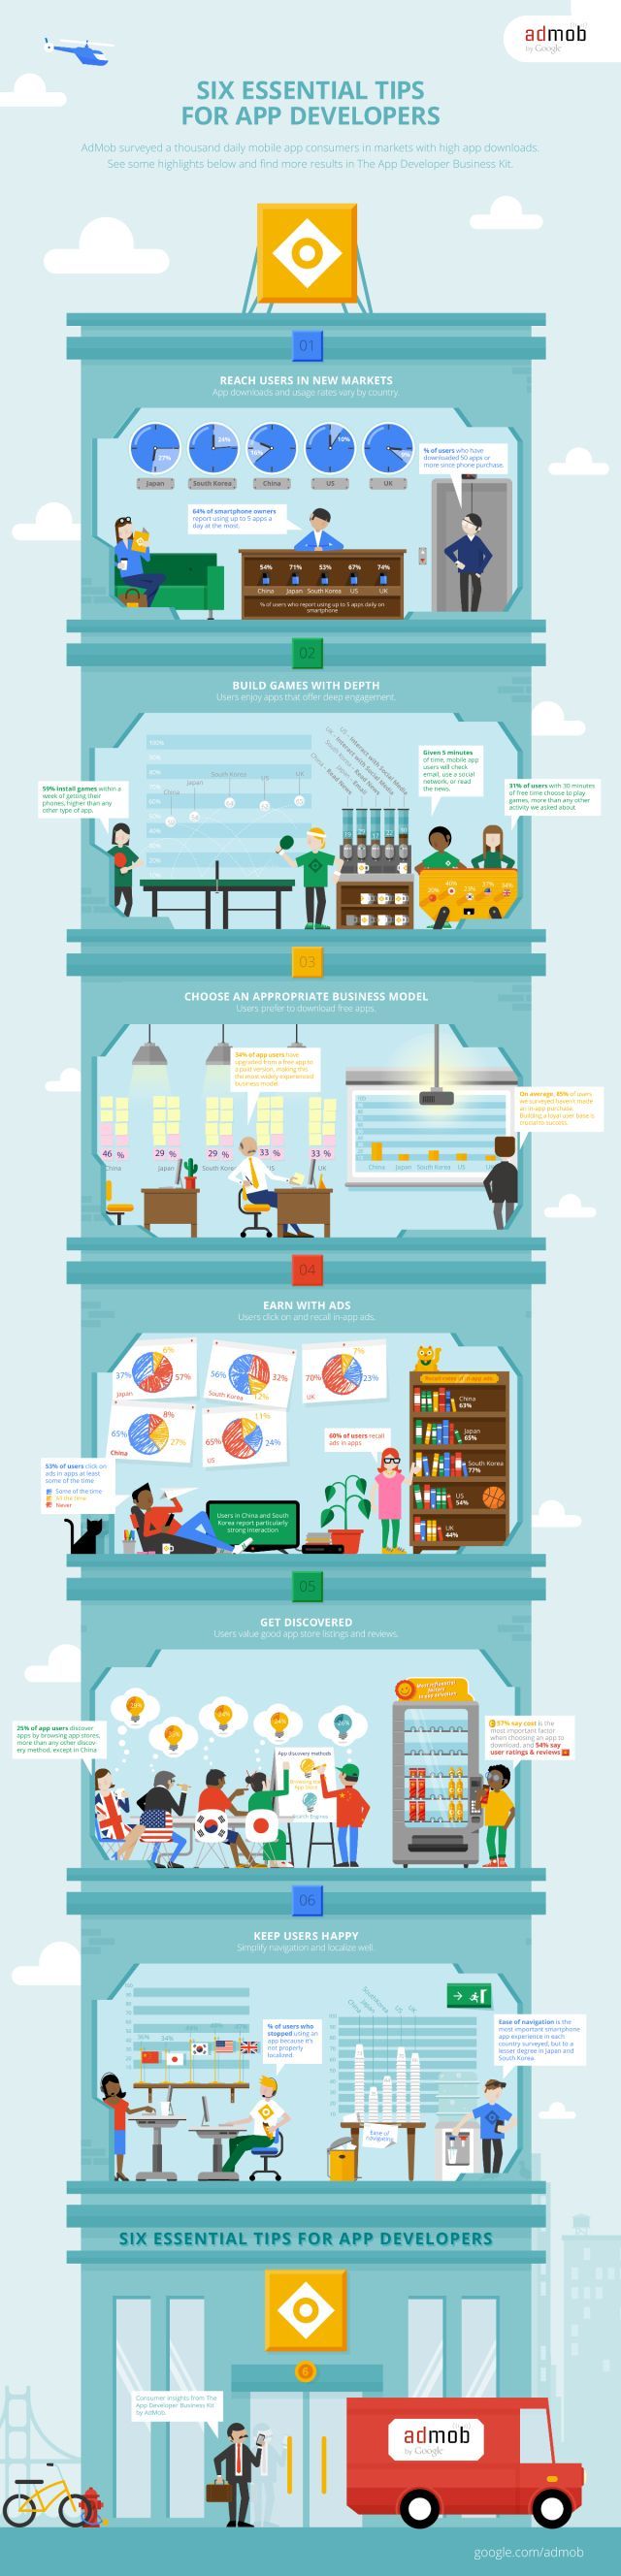 Six essential tips for App developers #infografia #infographic #software